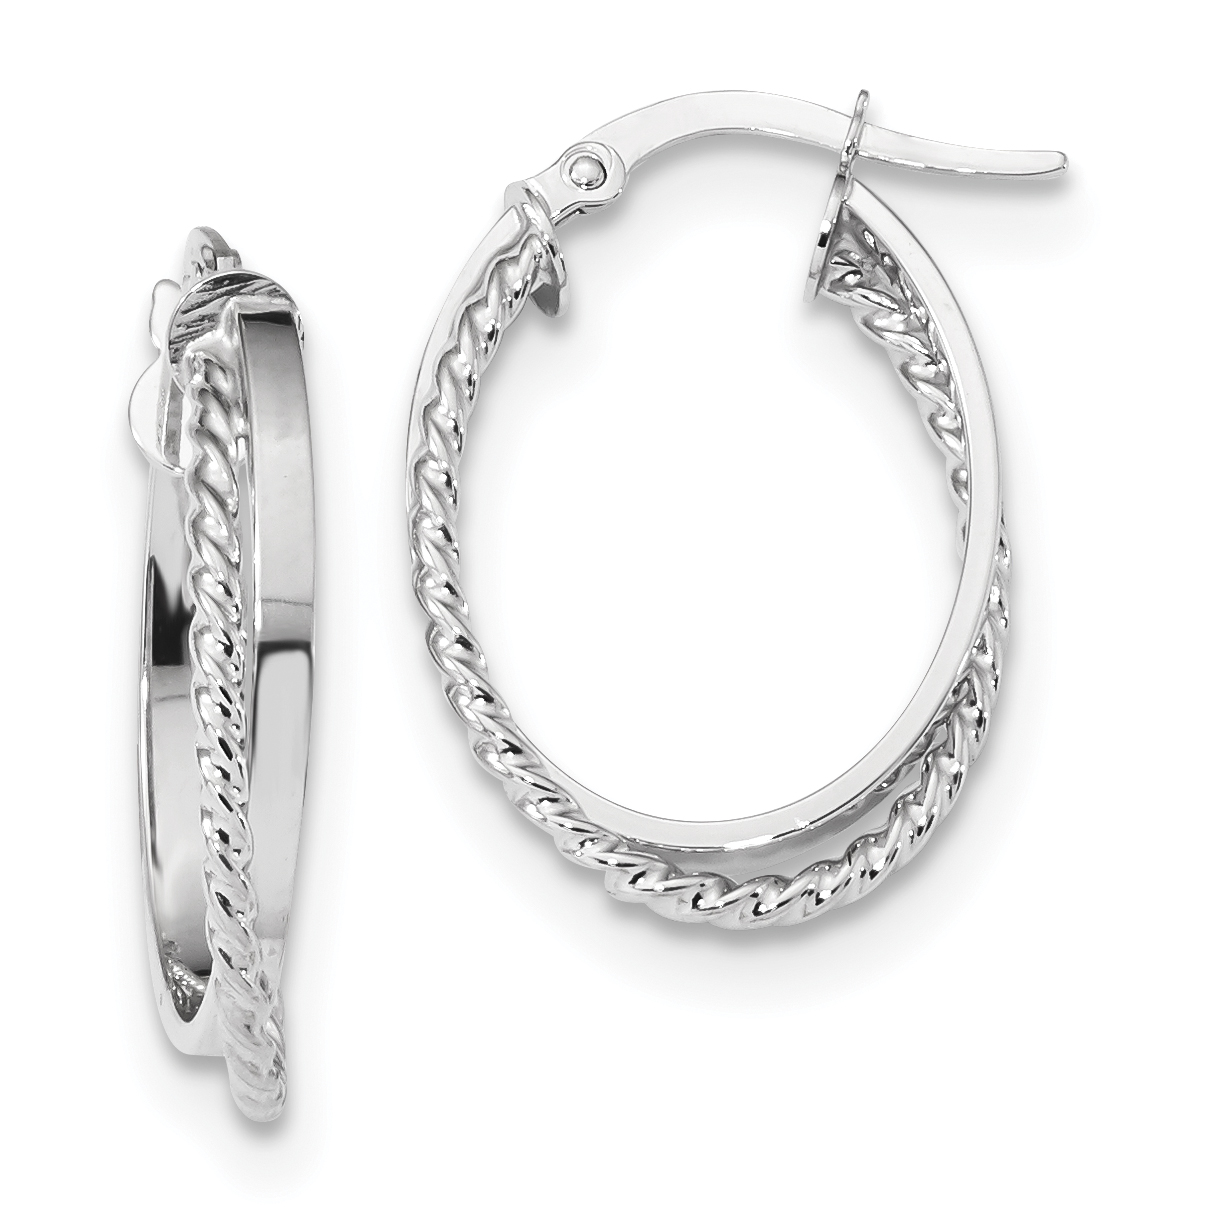 14K White Gold Polished & Textured Oval Hinged Hoop Earrings - image 2 of 2